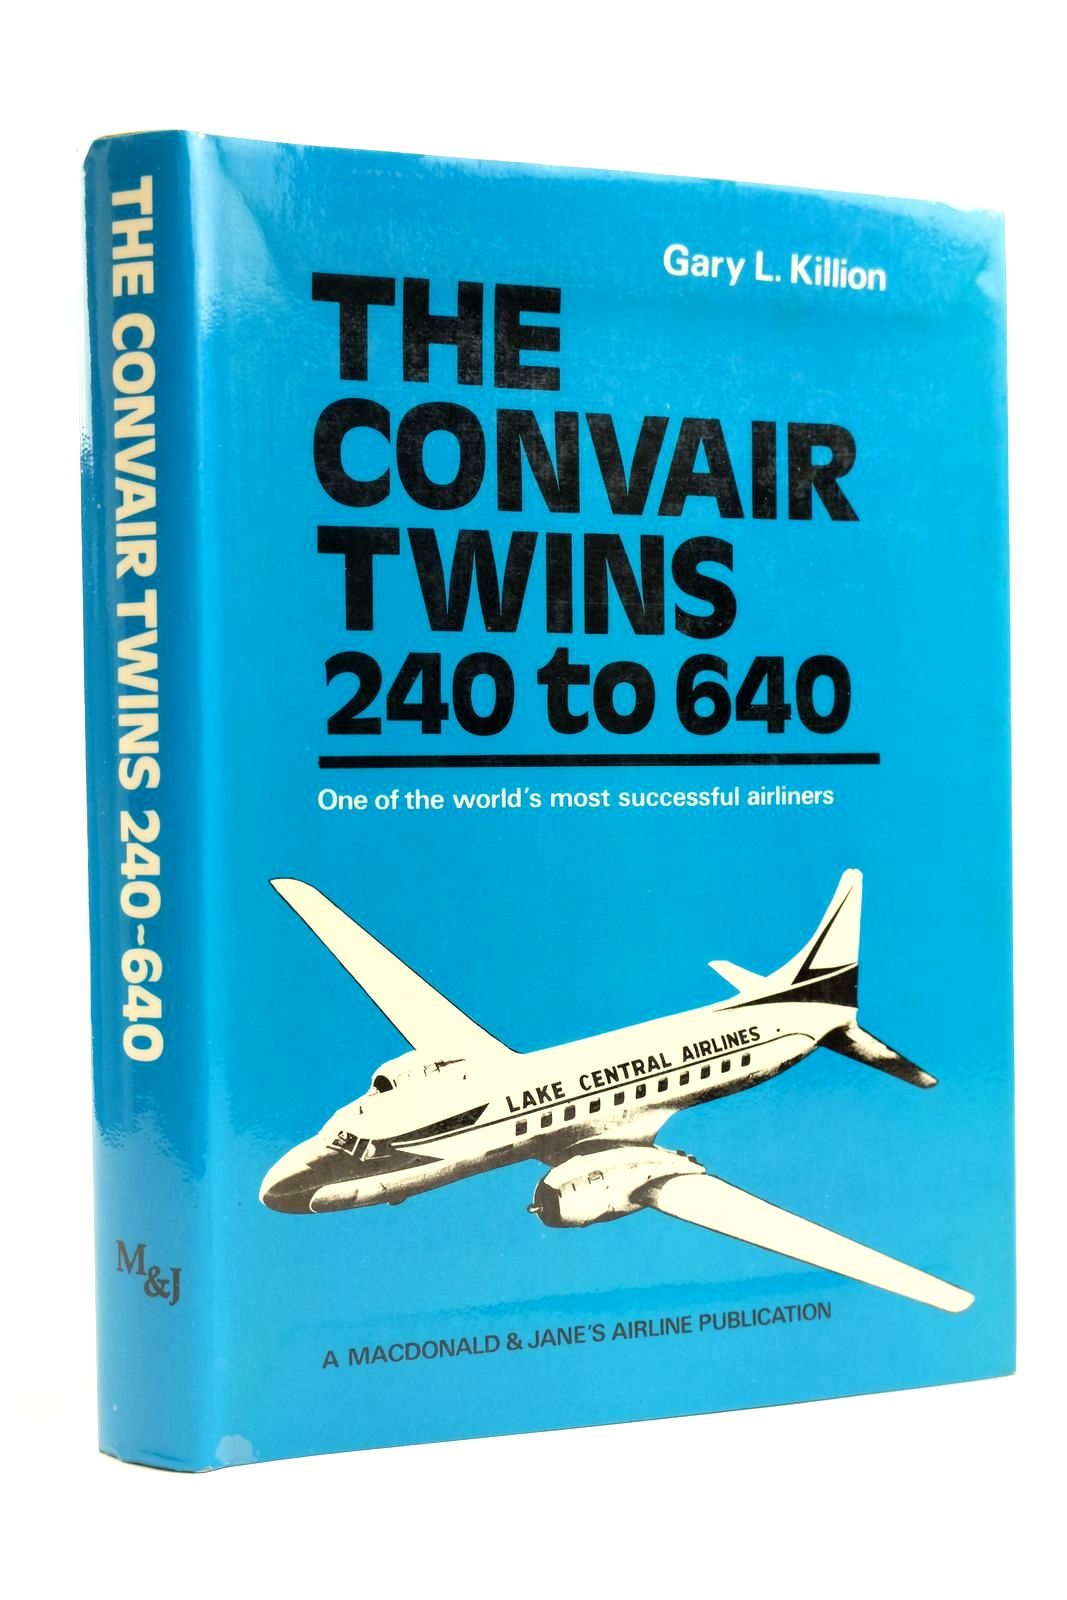 Photo of THE CONVAIR TWINS 240 TO 640 written by Killion, Gary L. published by Macdonald and Jane's (STOCK CODE: 2131915)  for sale by Stella & Rose's Books